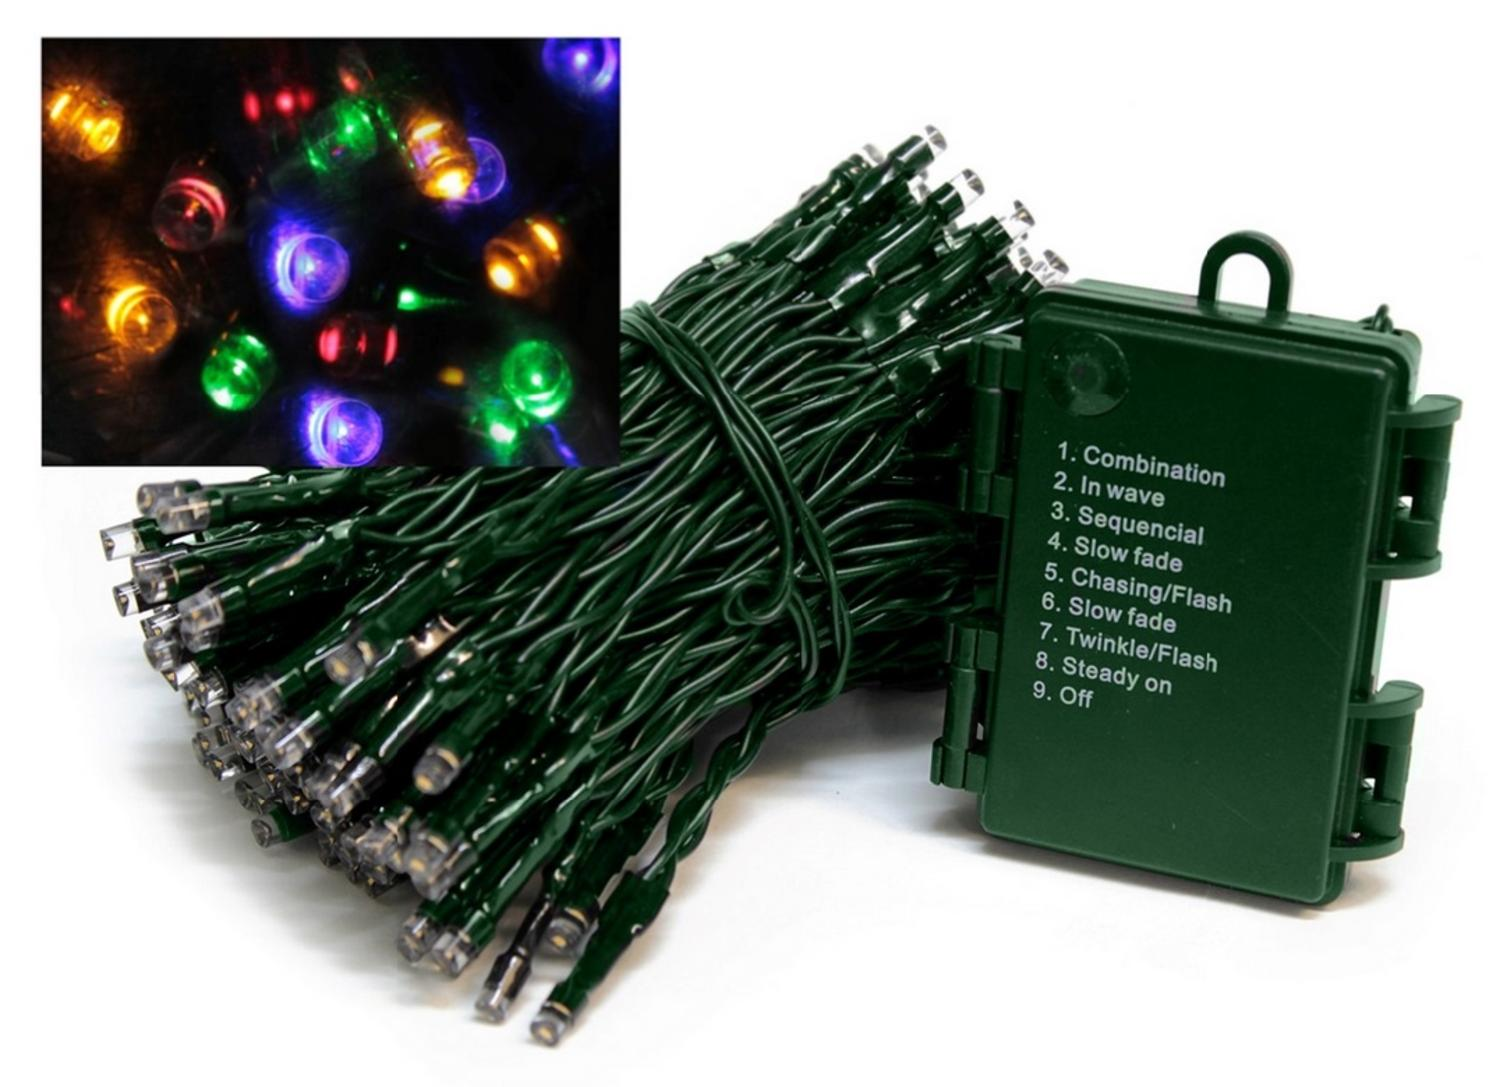 set of 1152 battery operated multi function cool white led wide angle christmas lights green wire walmartcom - Multifunction Christmas Lights